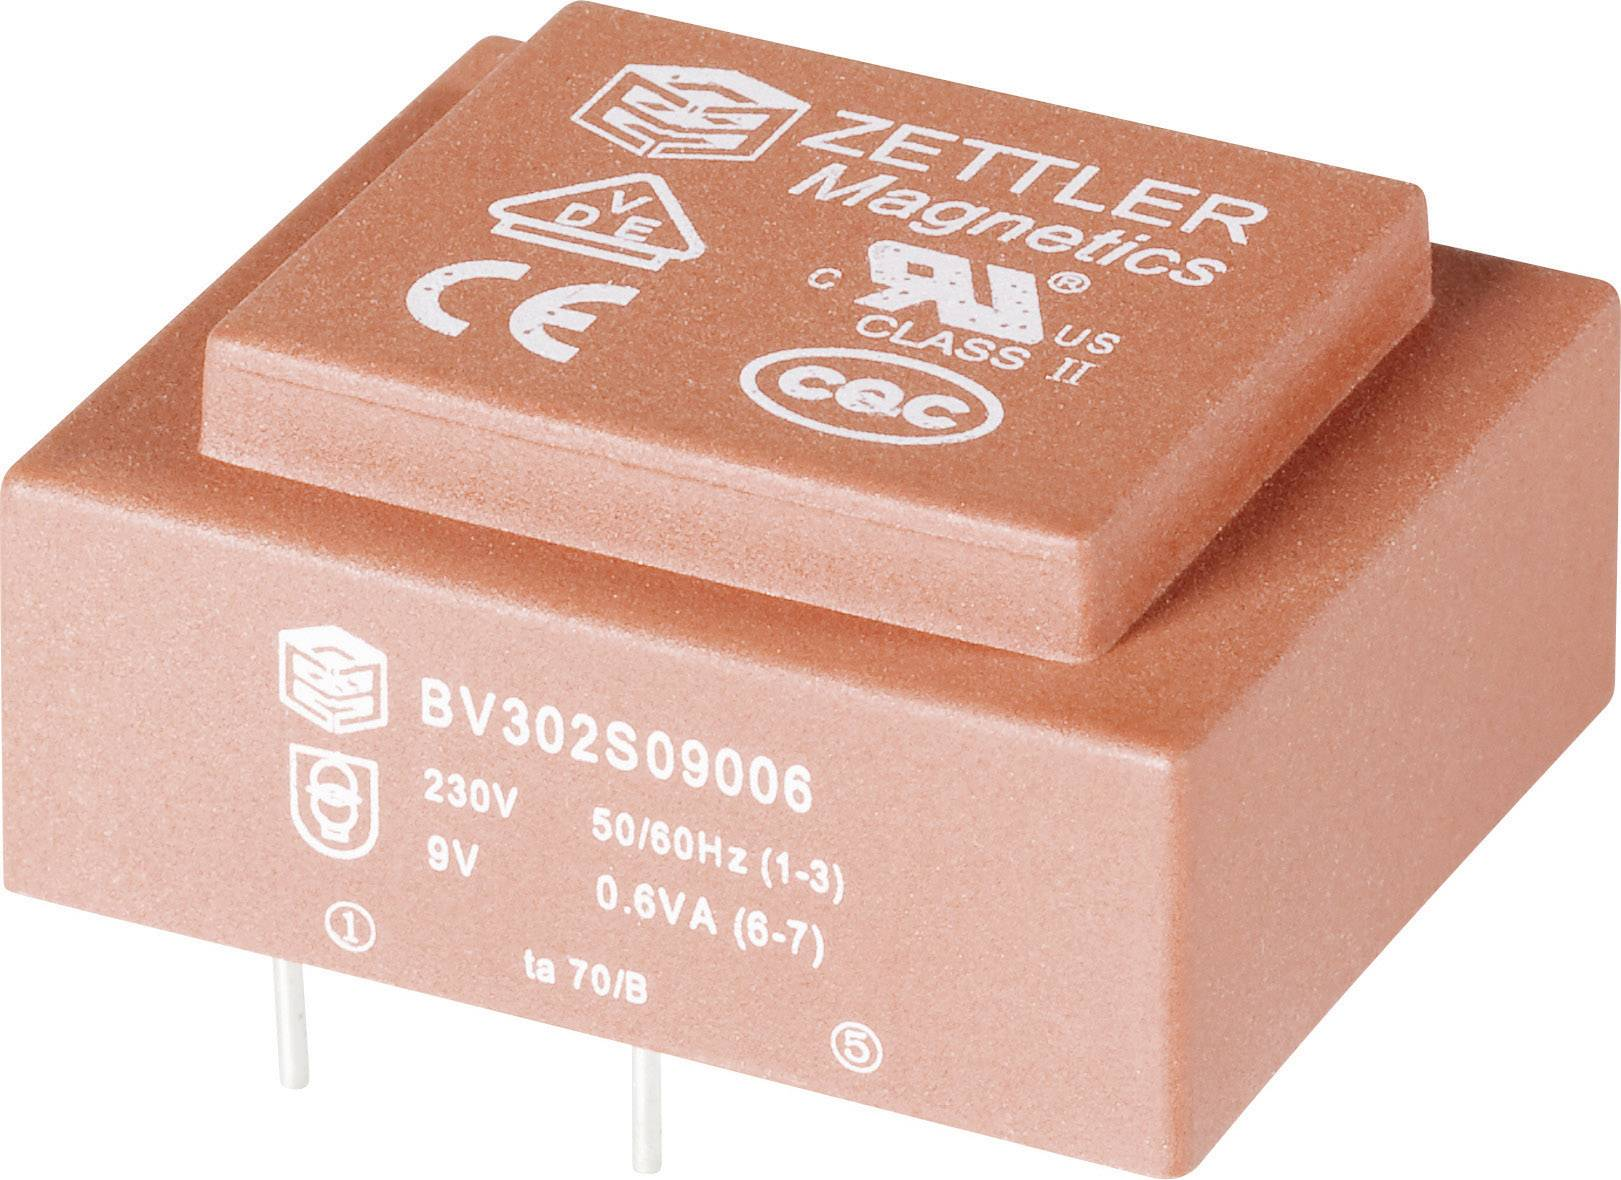 Transformátor do DPS Zettler Magnetics El30, 230 V/12 V, 50 mA, 1 VA